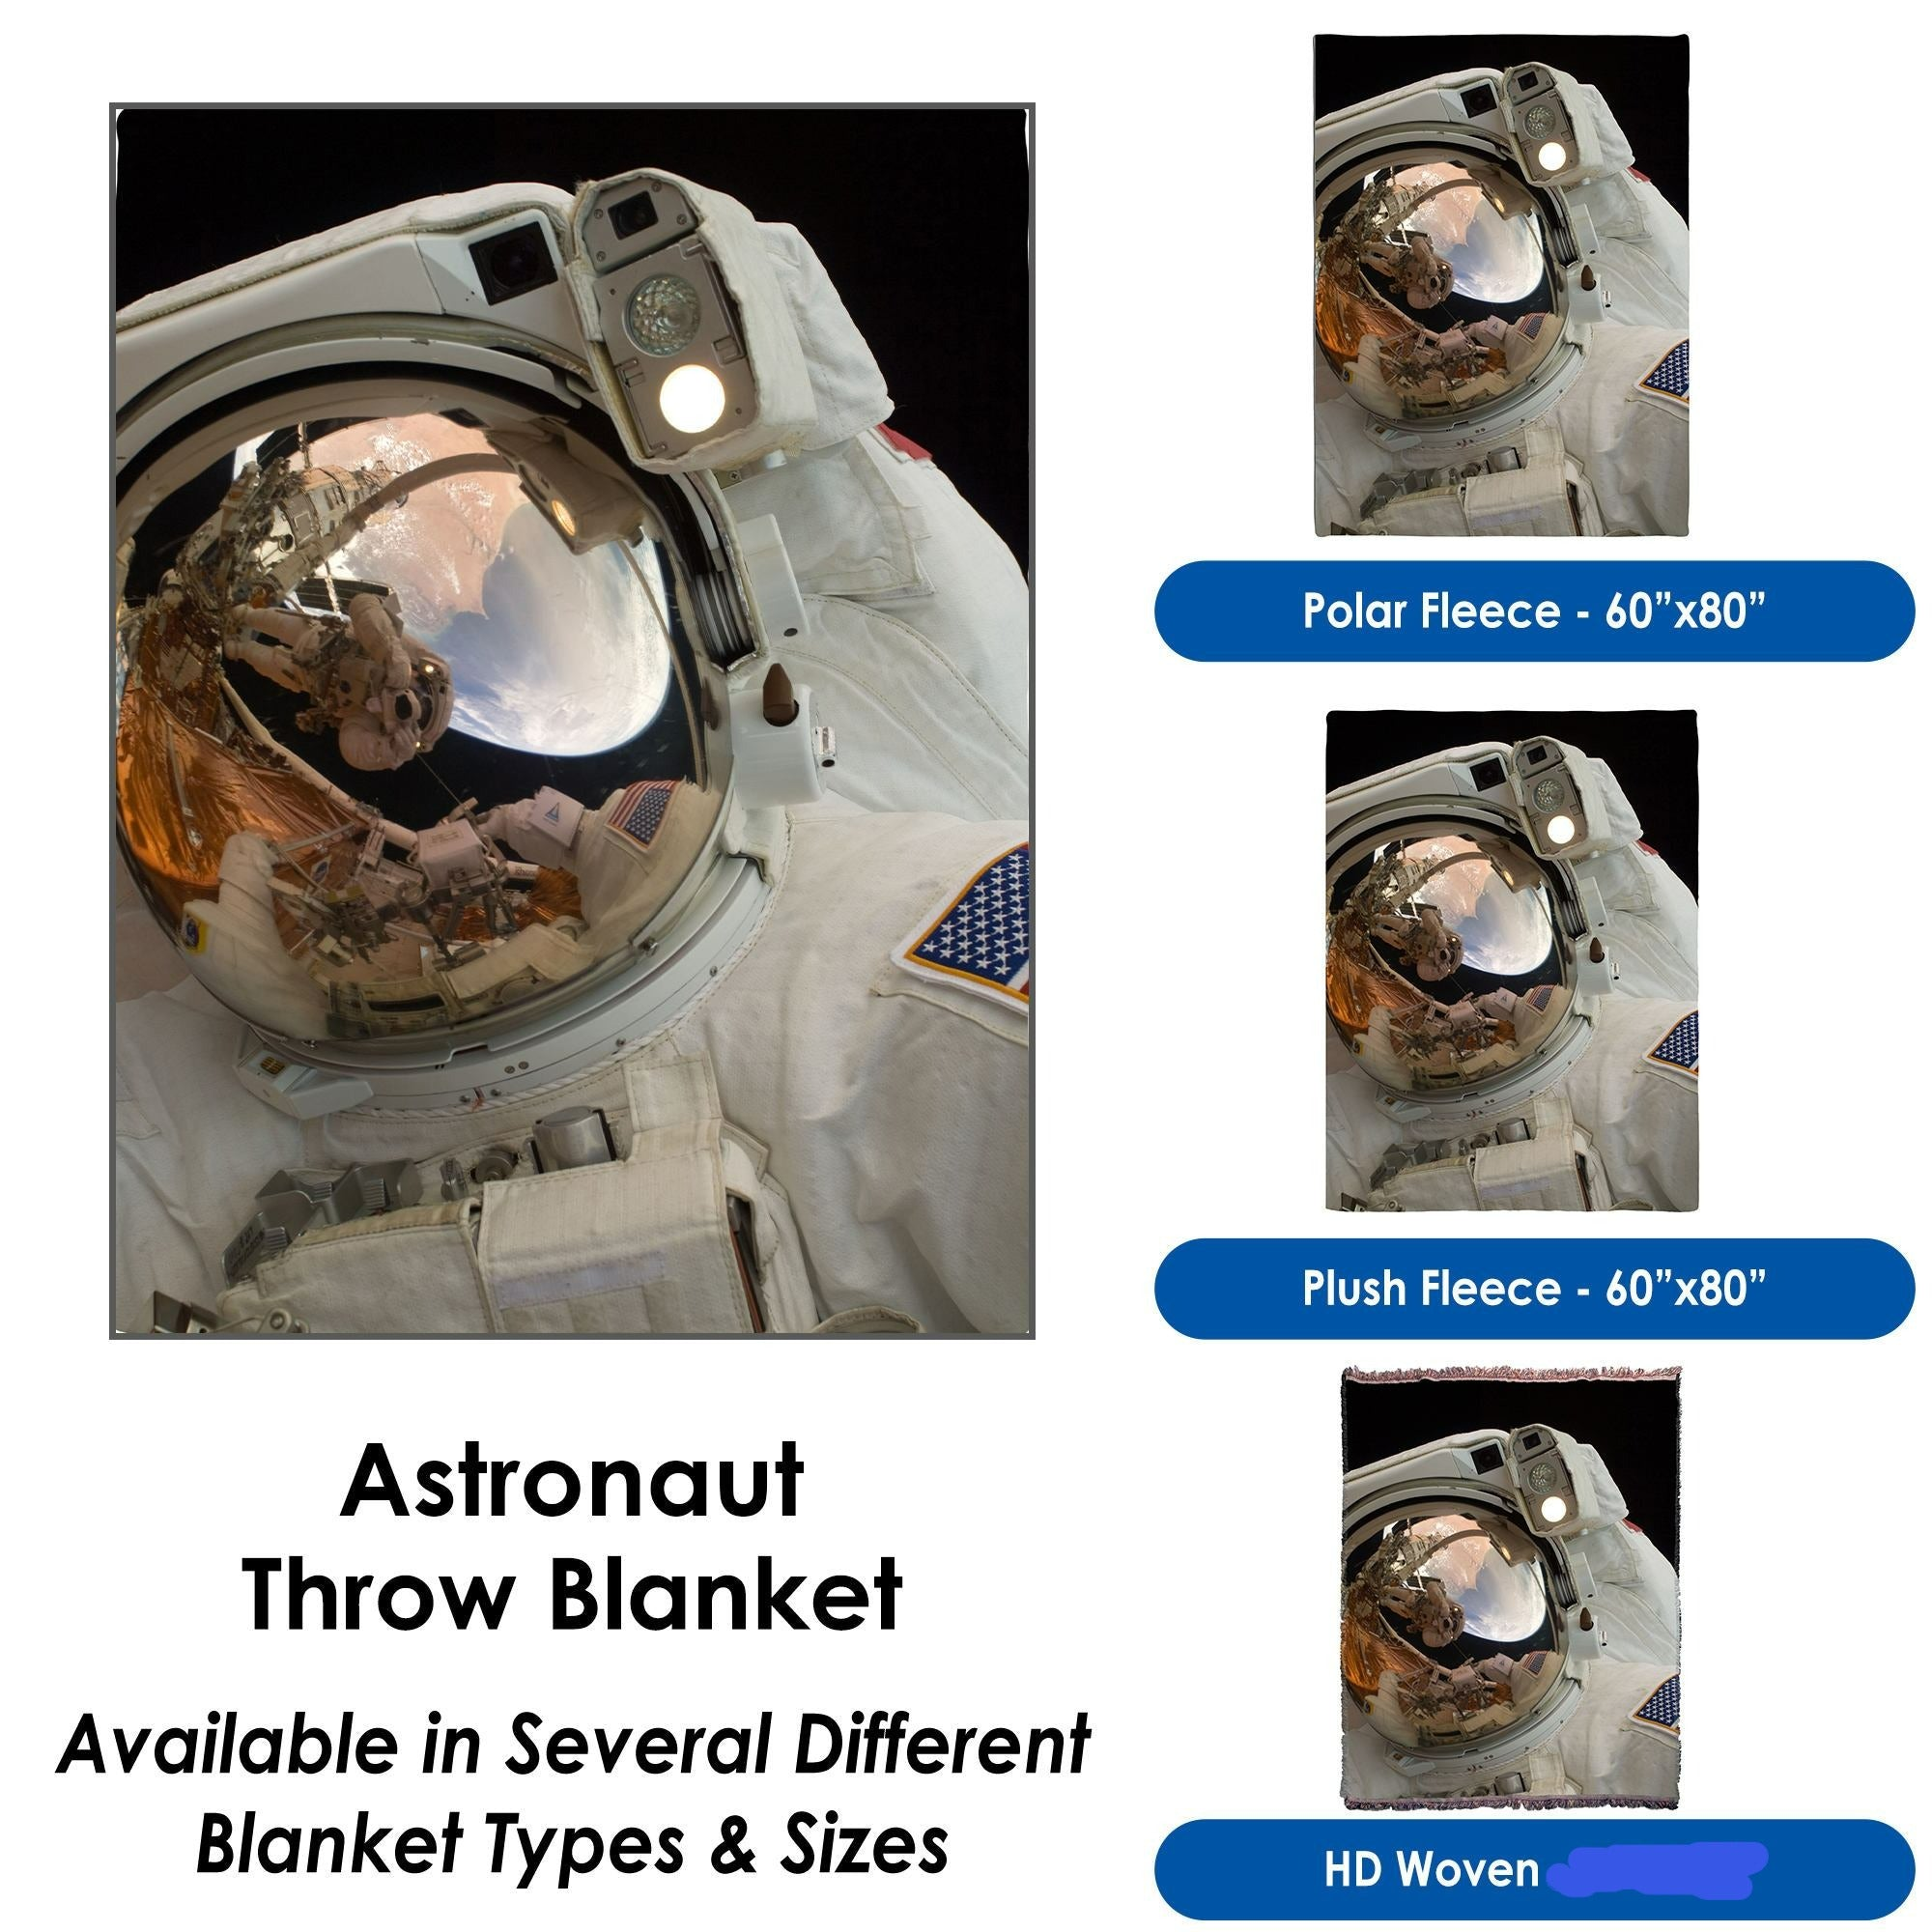 Astronaut Throw Blanket - Many sizes and fabrics available